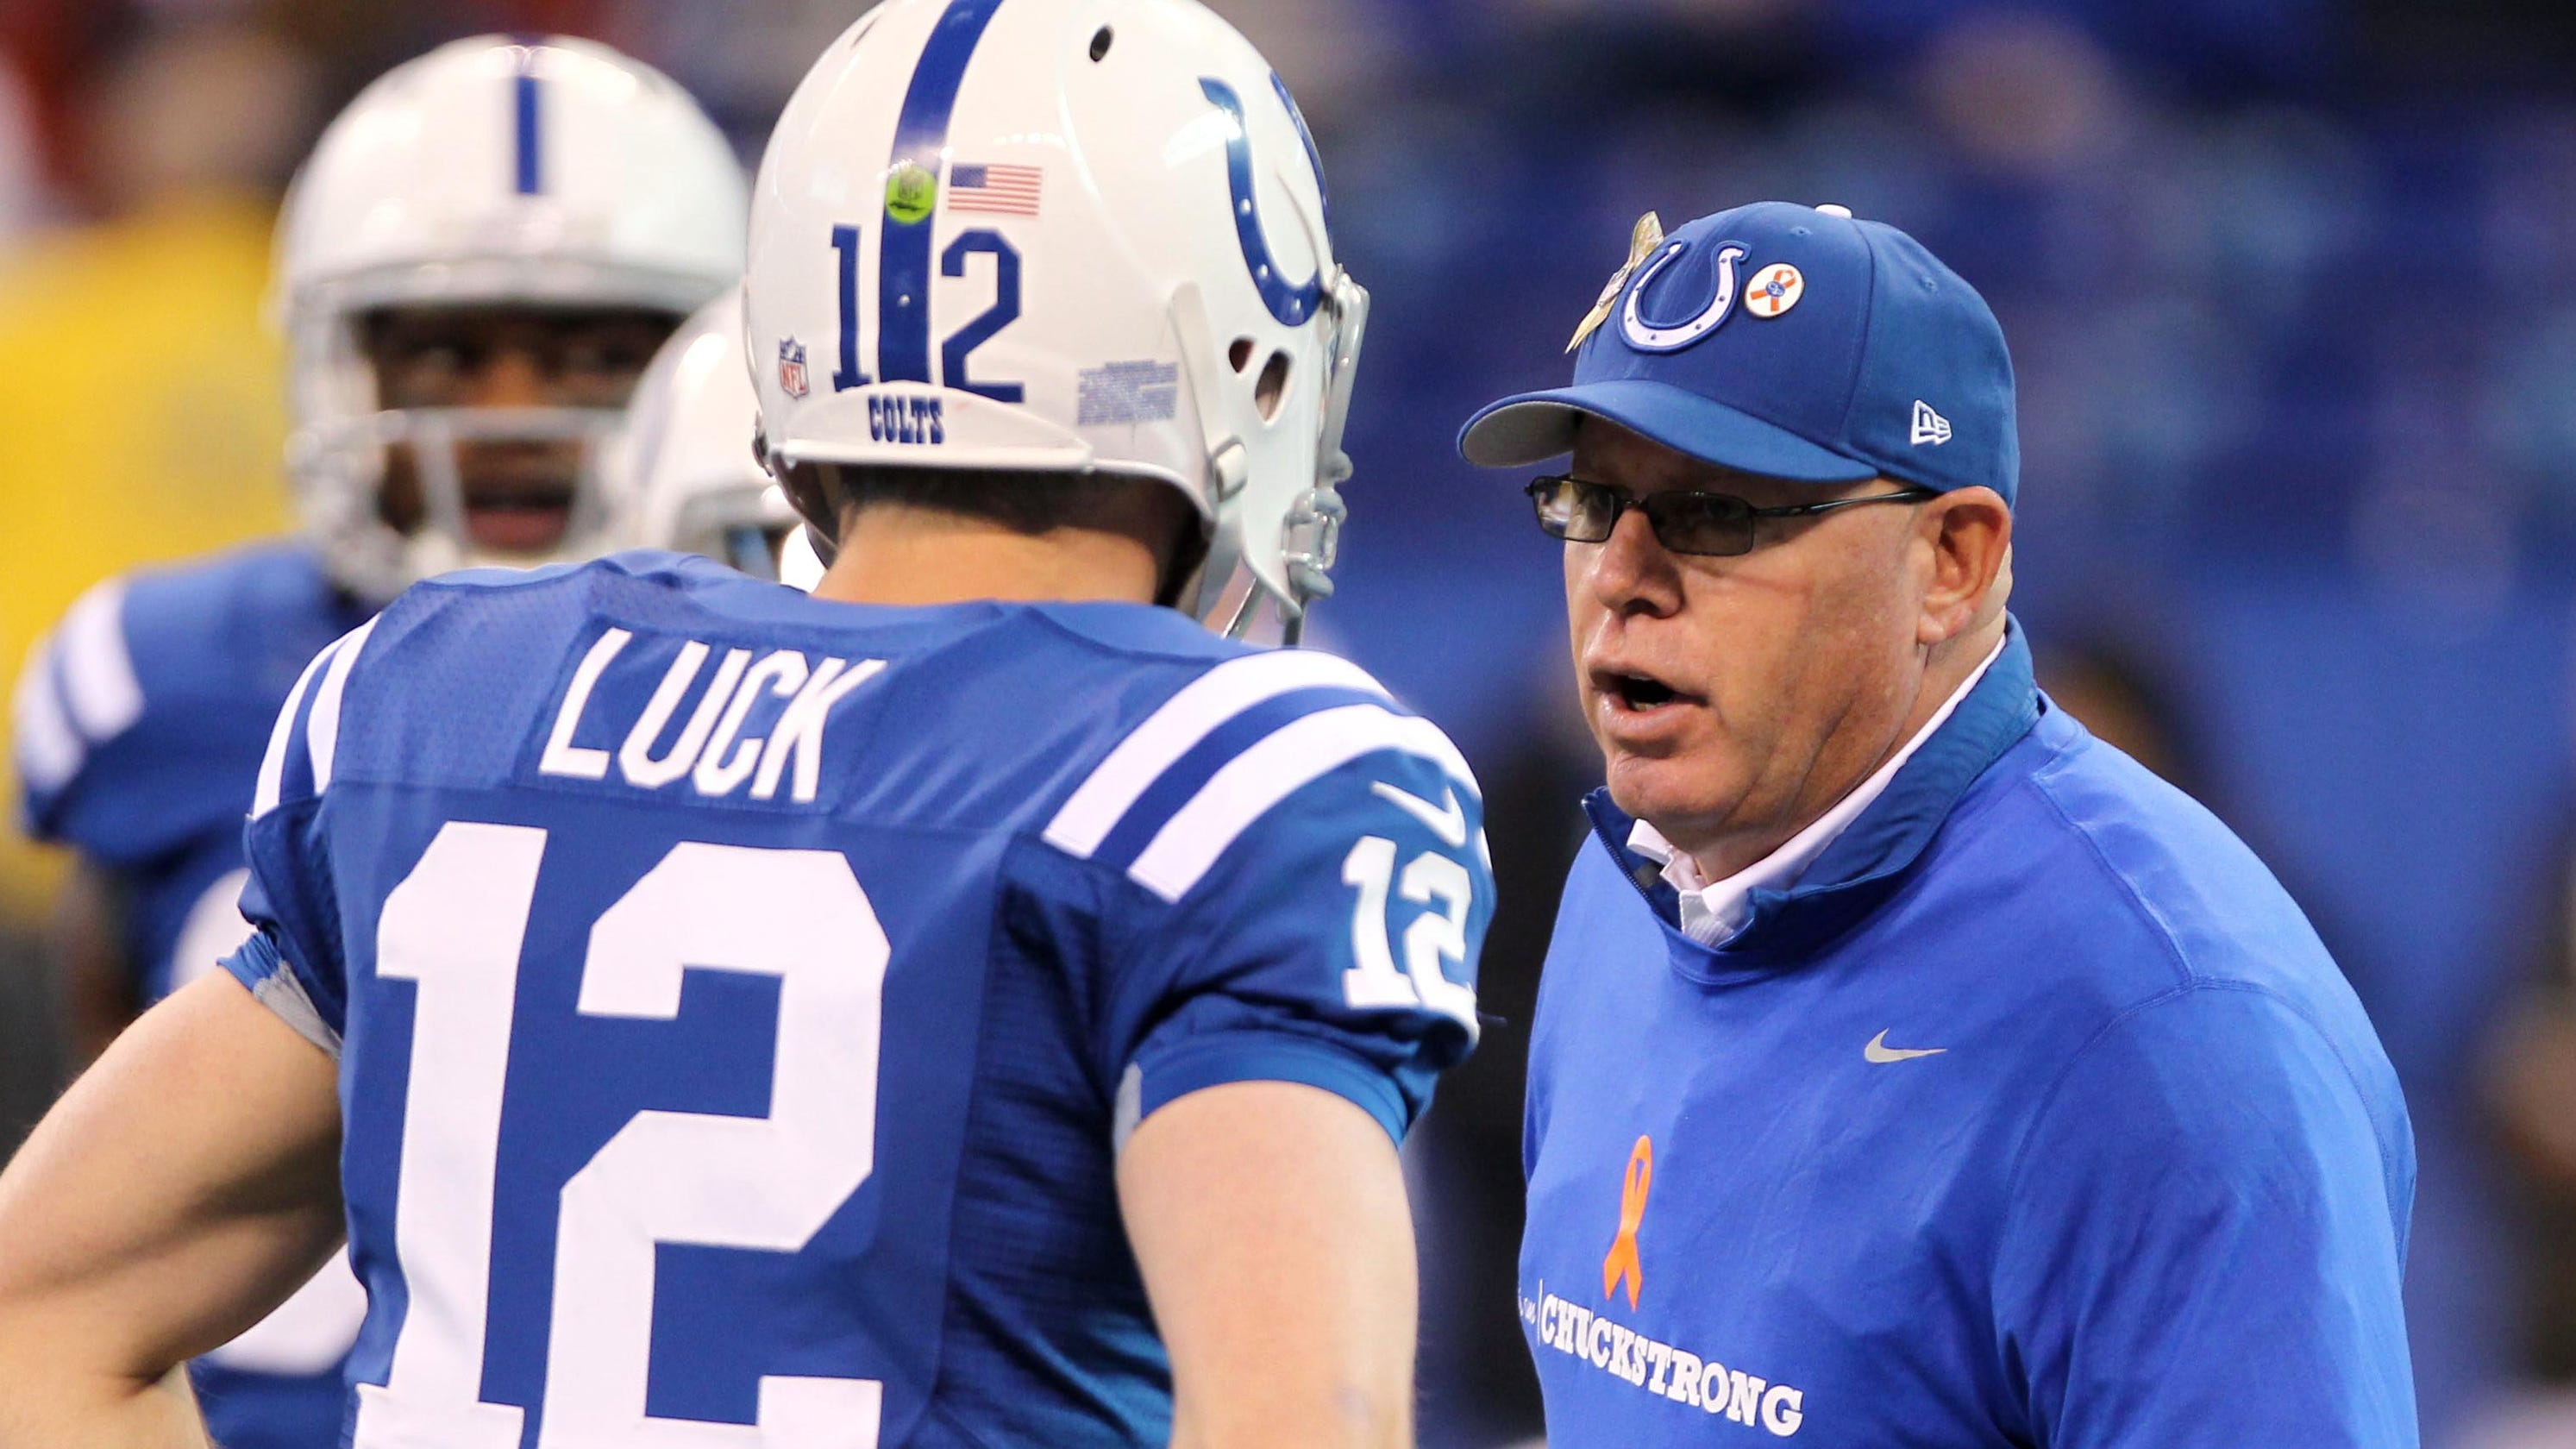 Buccaneers coach Bruce Arians: 'Very disheartening' to see Andrew Luck retire from Colts